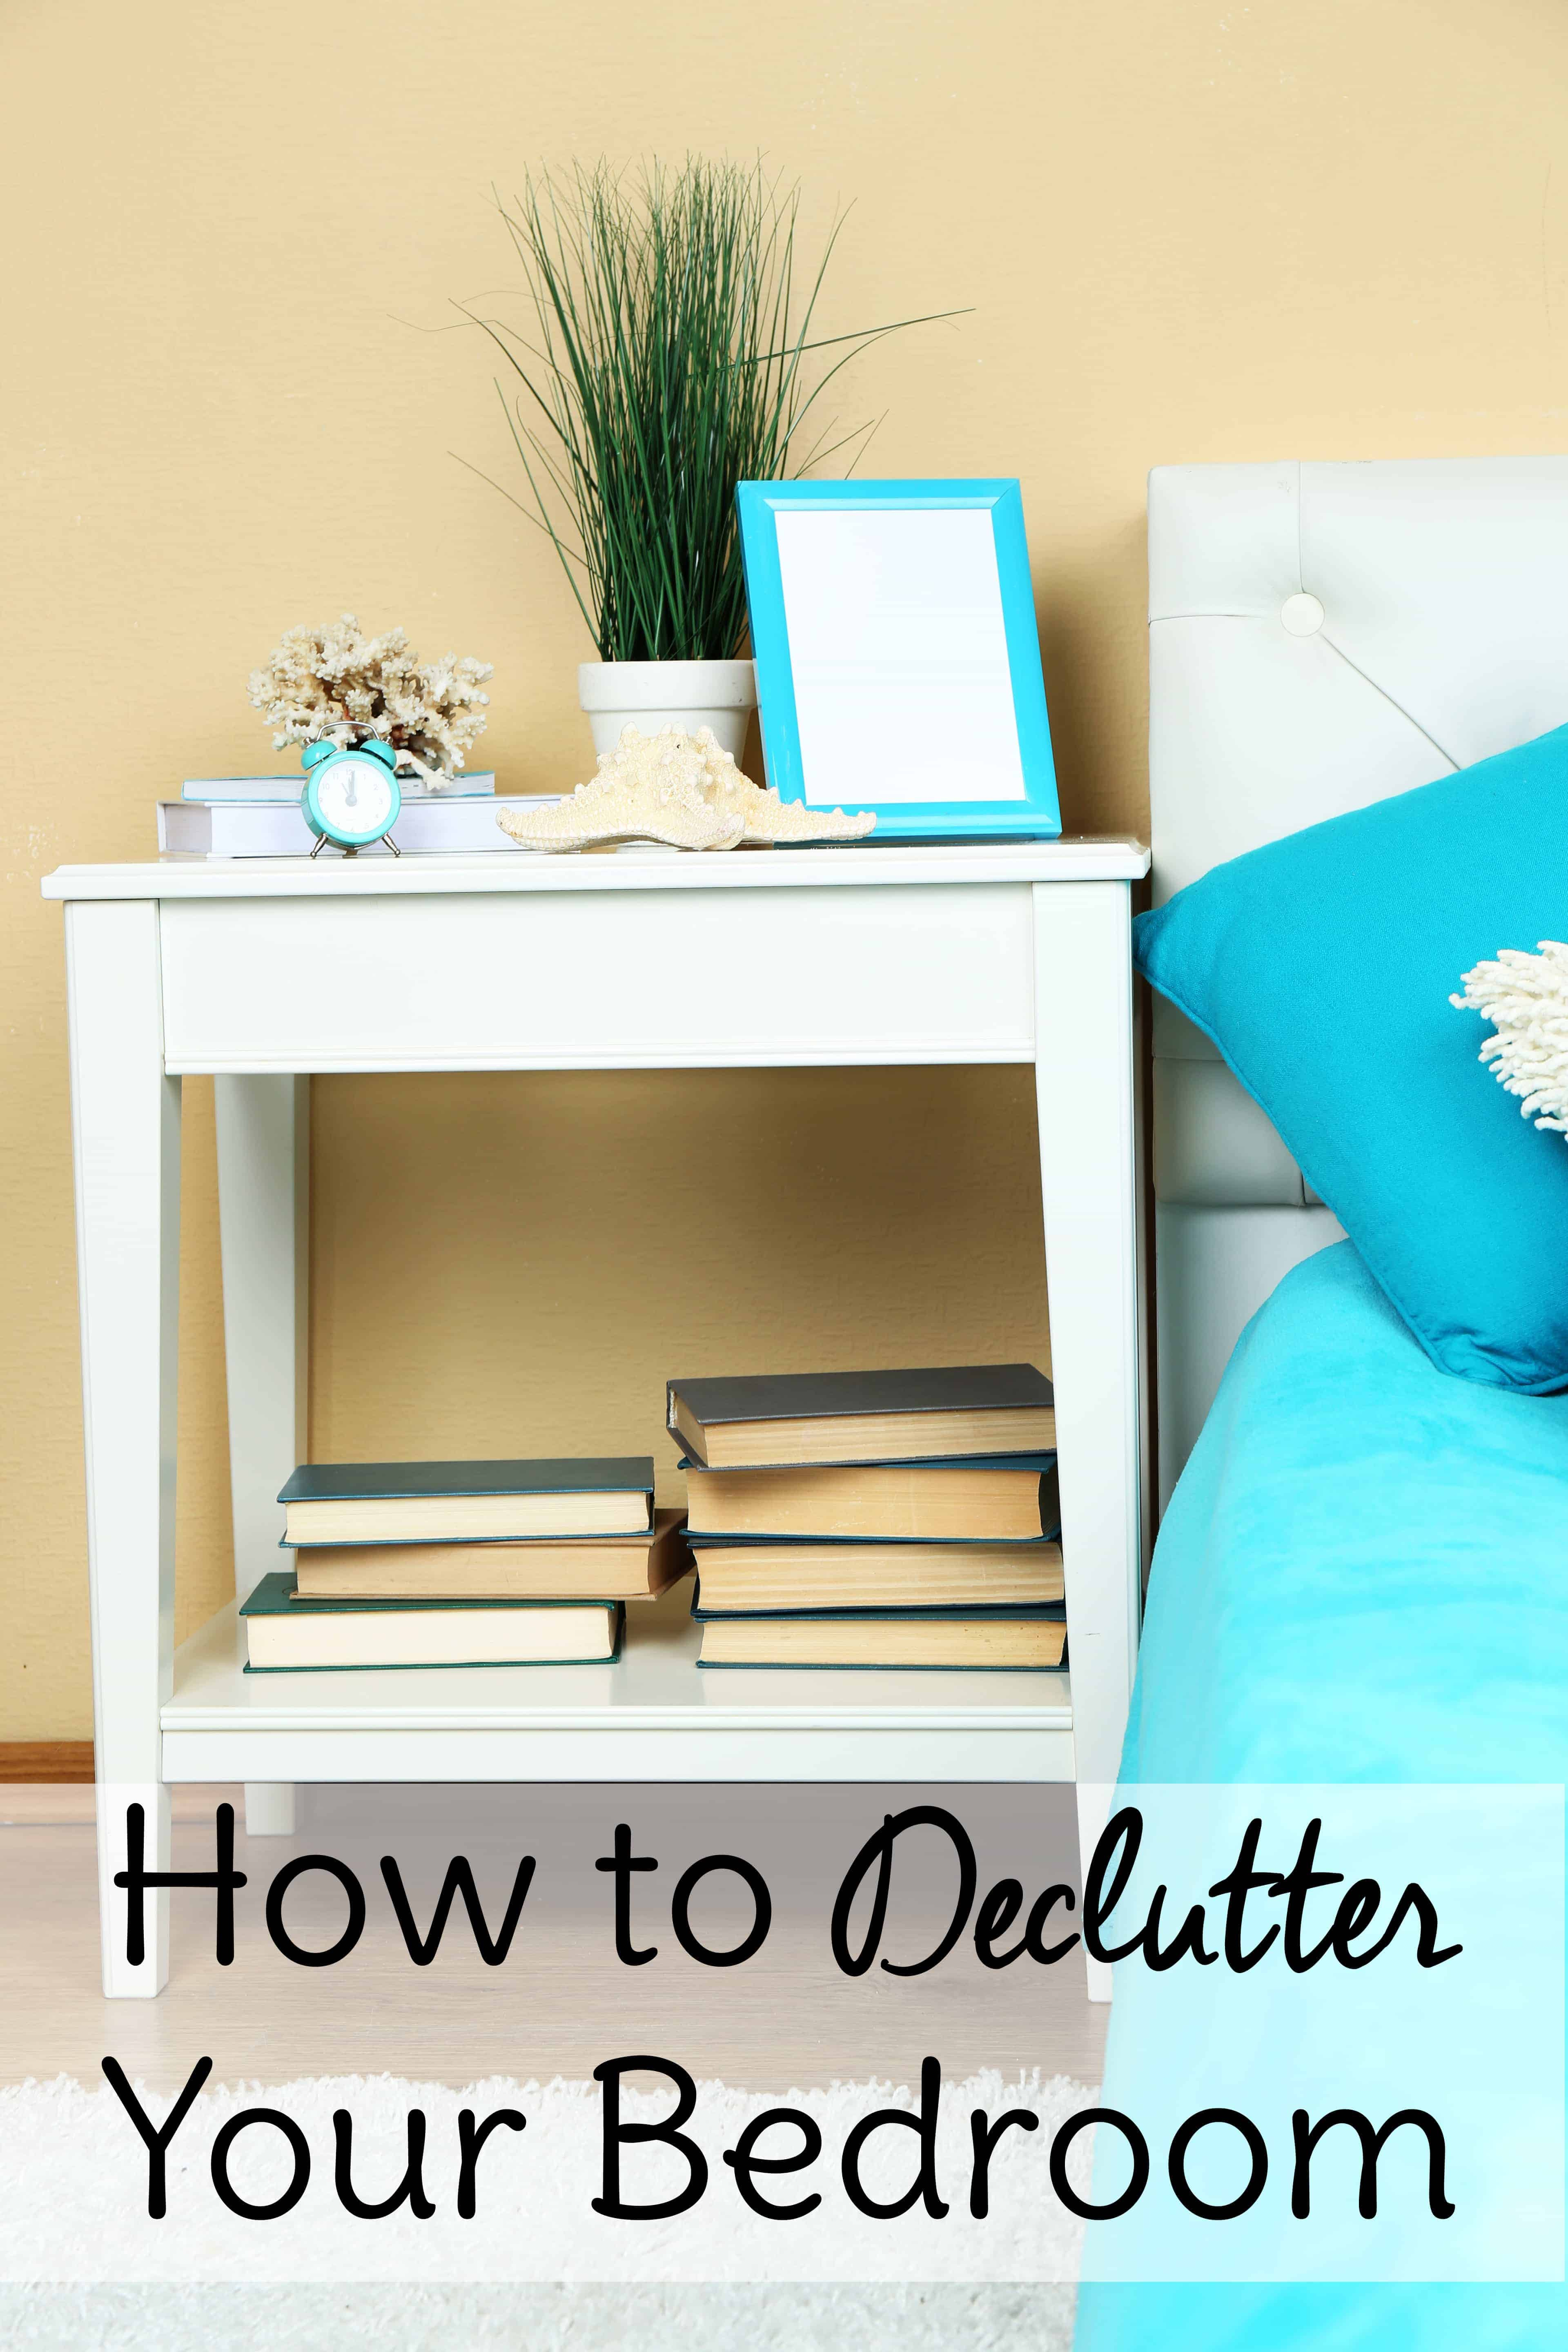 ... your bedroom how to declutter the master bedroom clean and scentsible